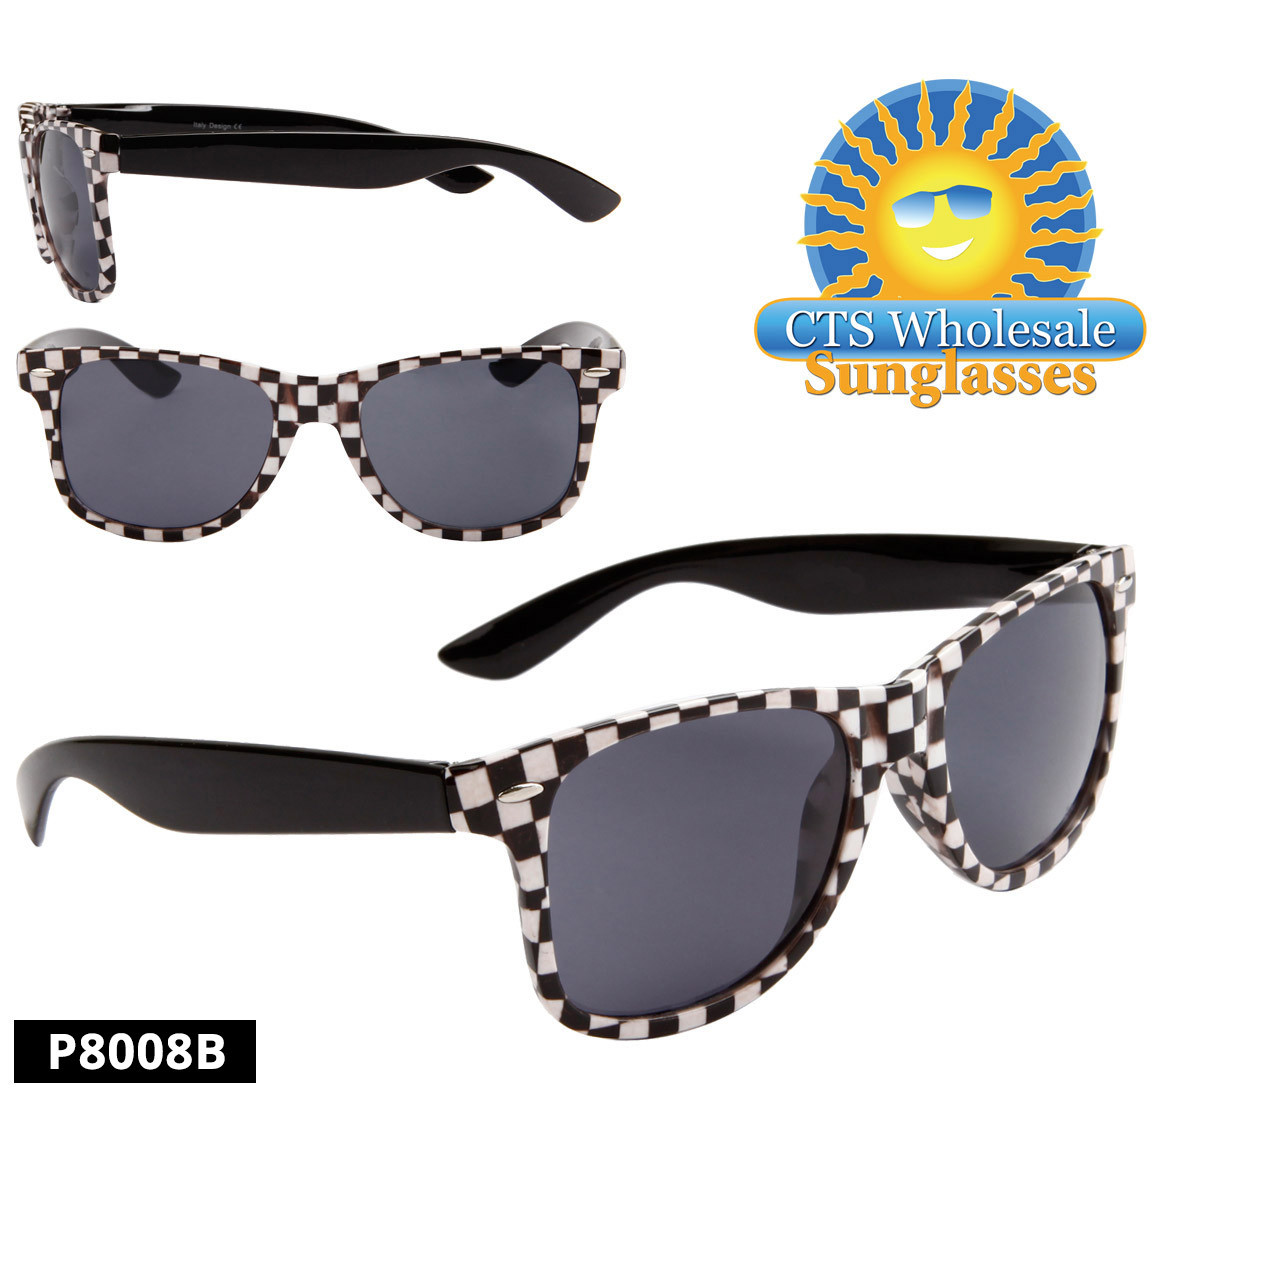 Checkered California Classics Sunglasses - Style P8008B